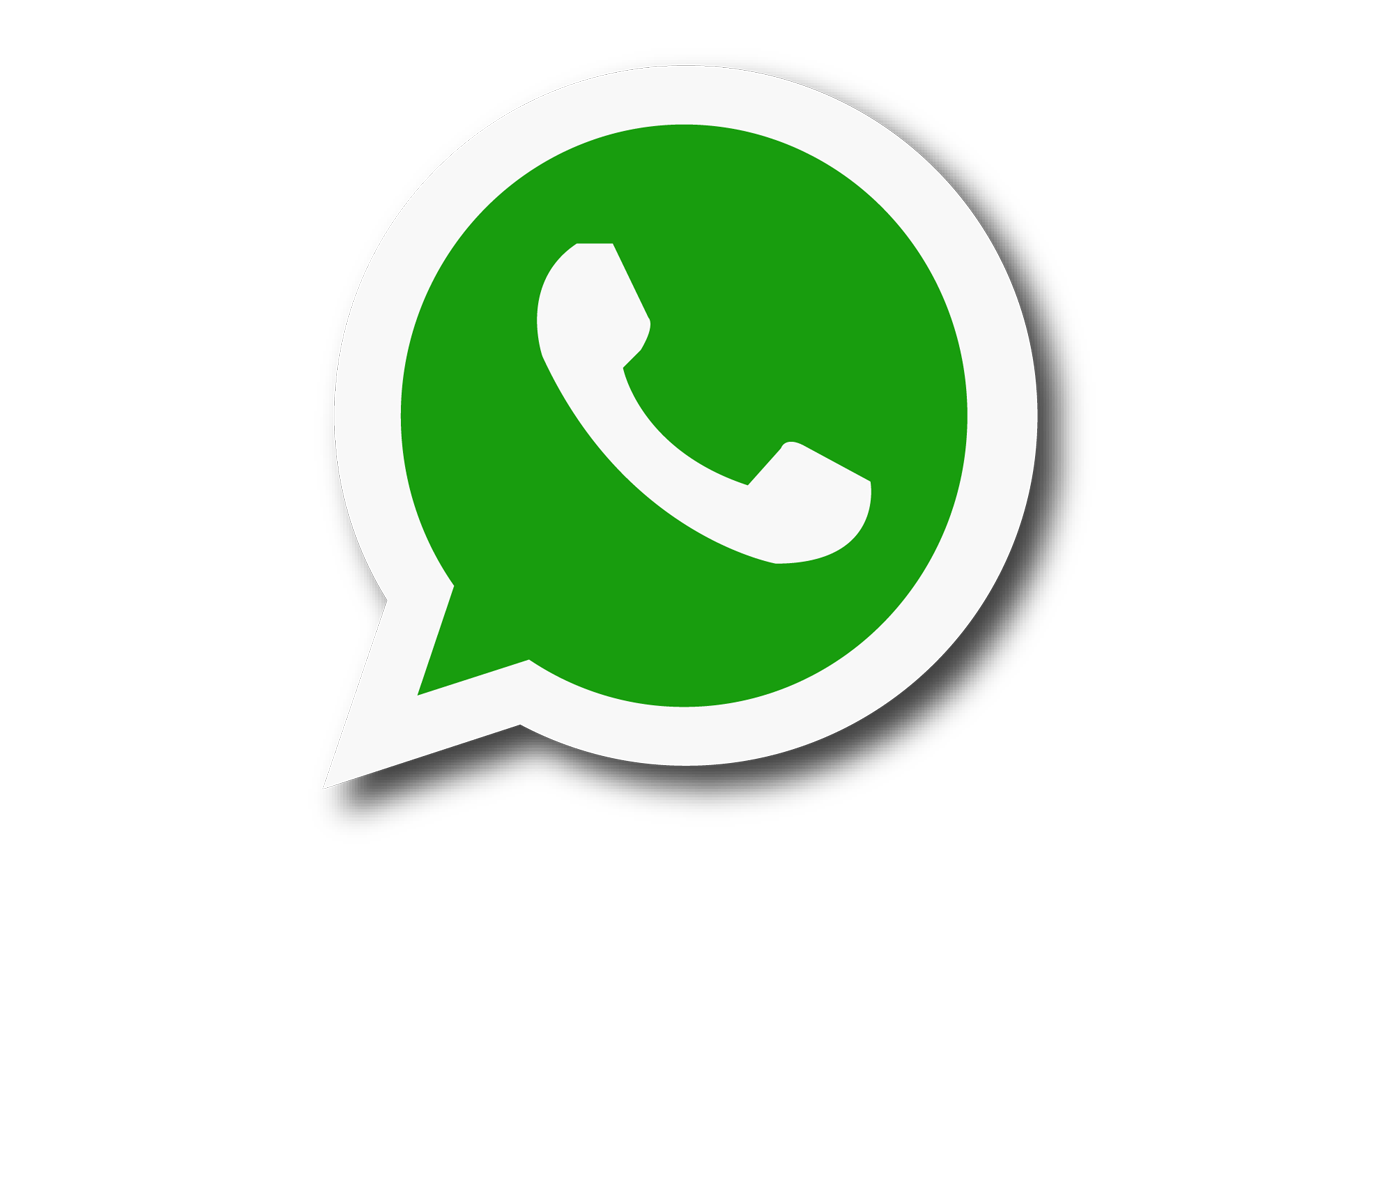 Pakistan Instant Messaging Viber Iphone Internet Zong PNG Image